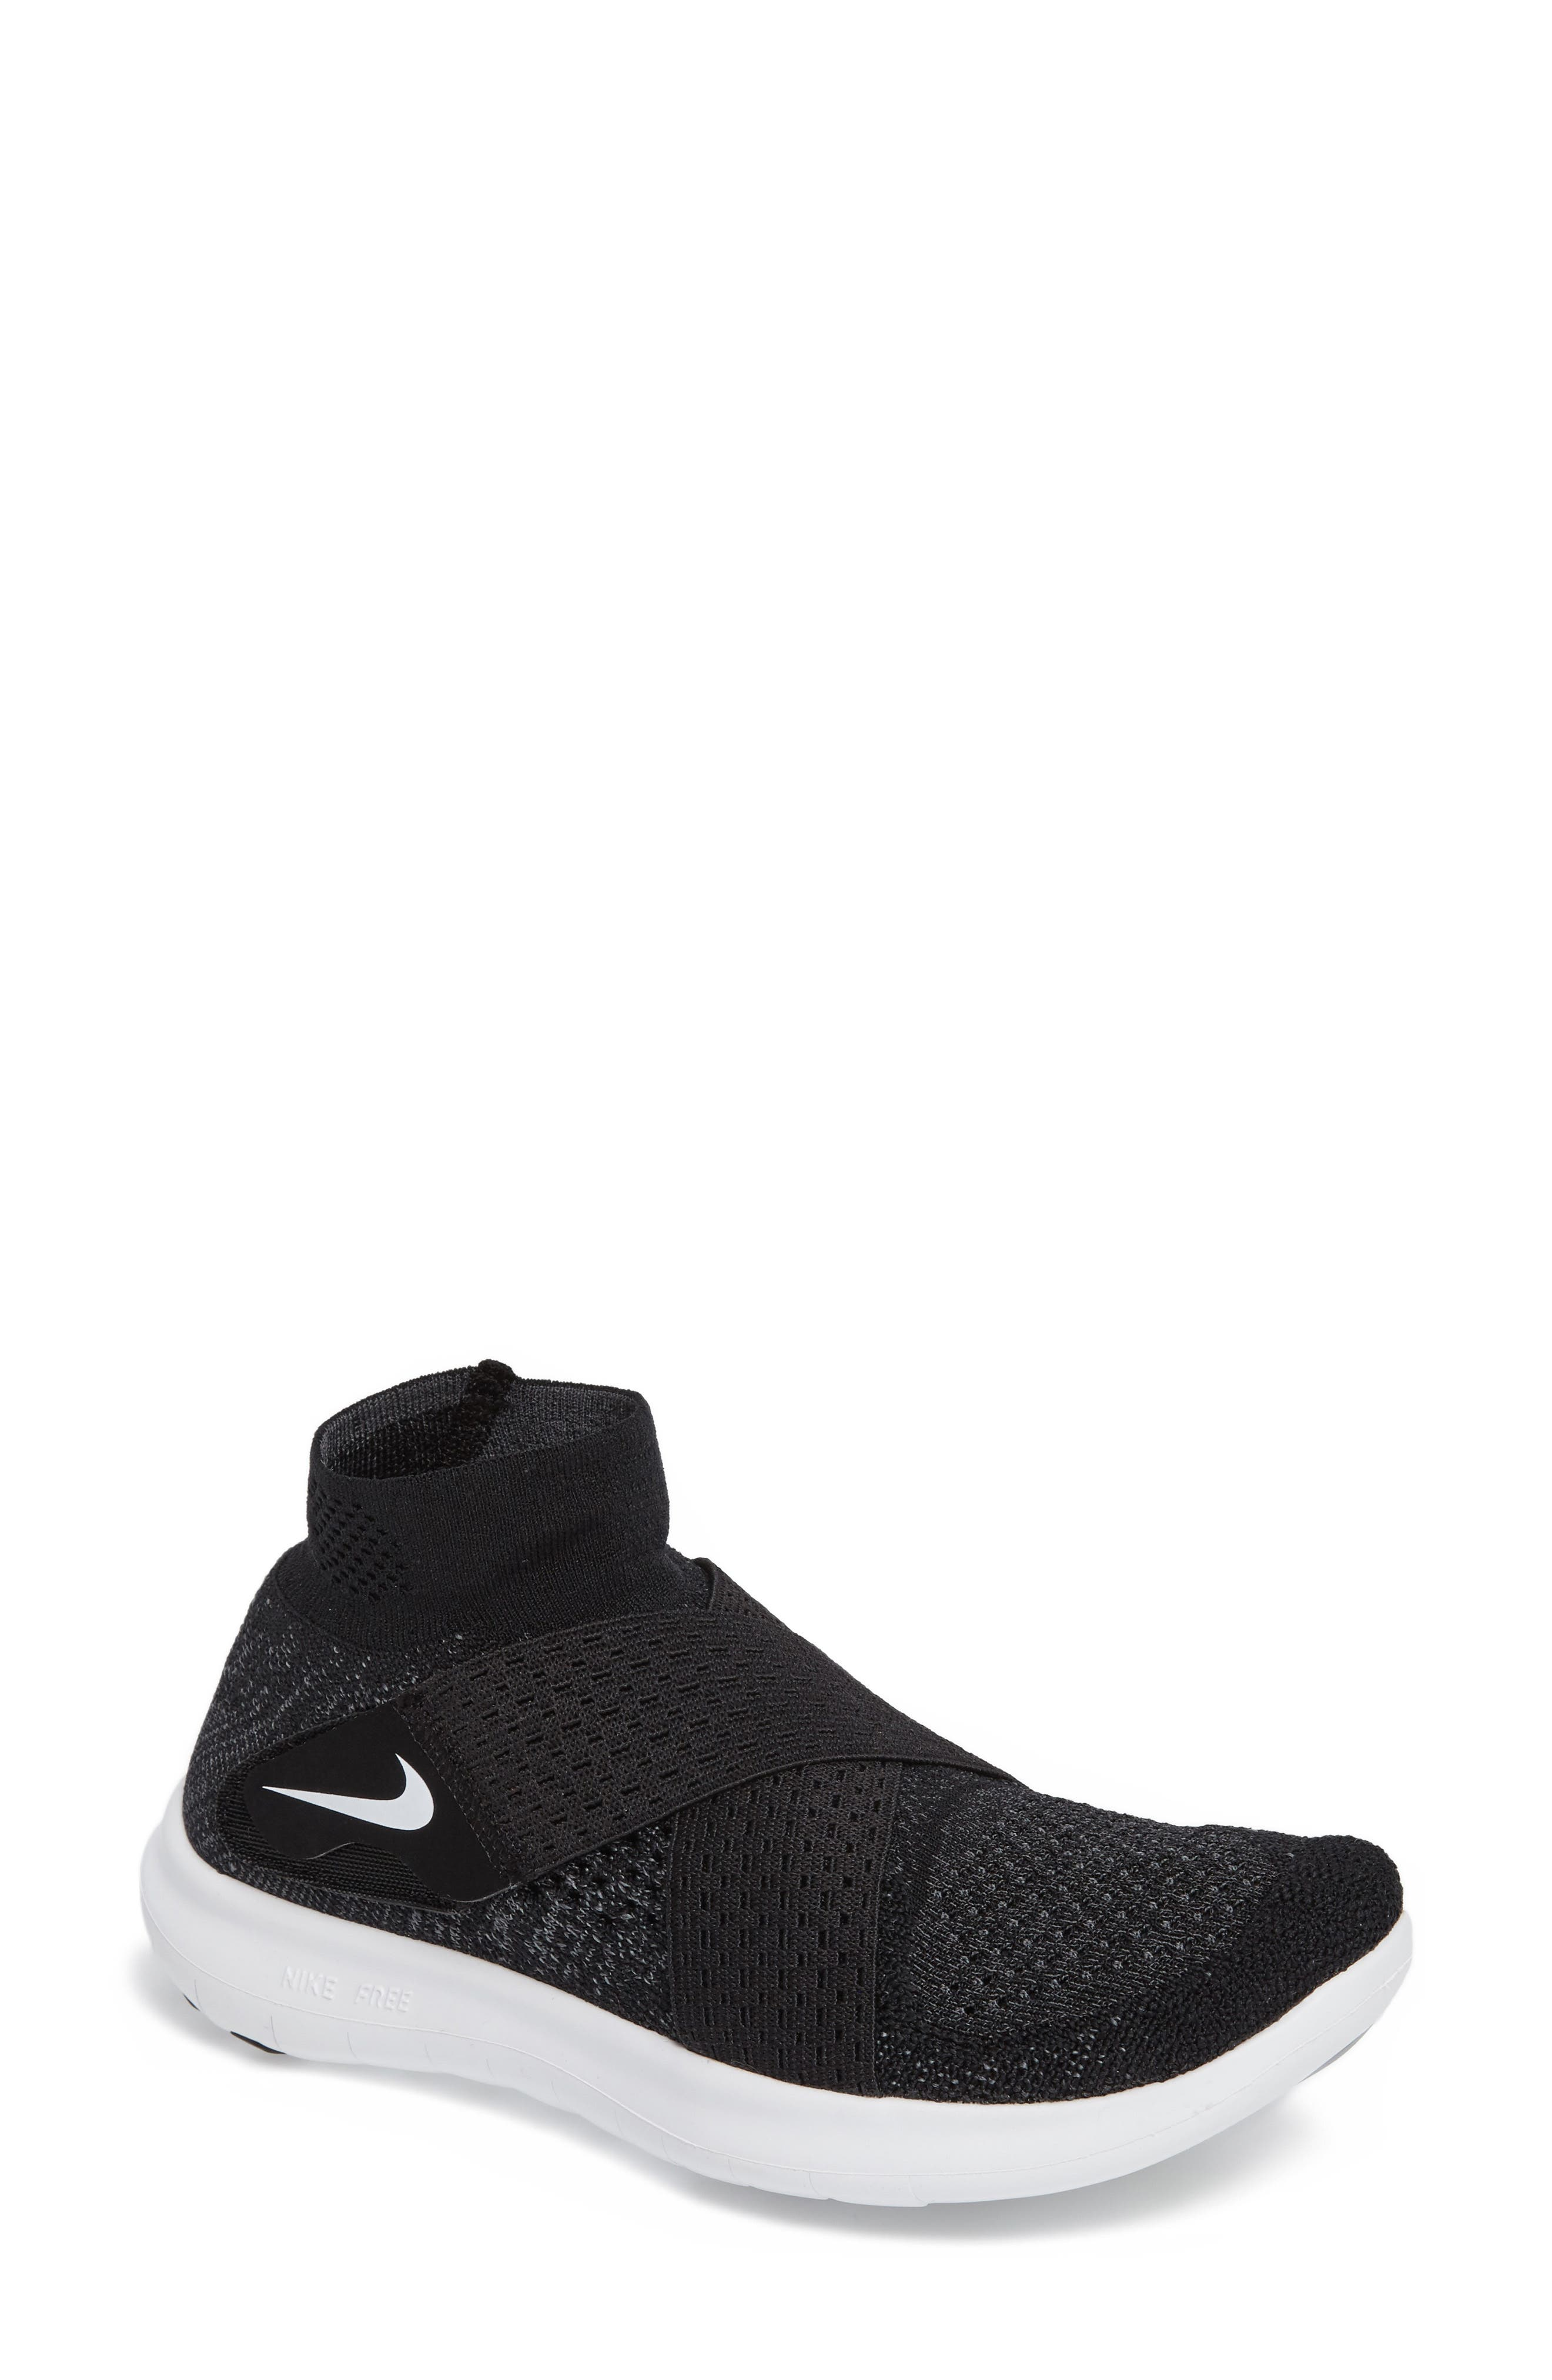 Free Run Flyknit Motion 2017,                         Main,                         color,